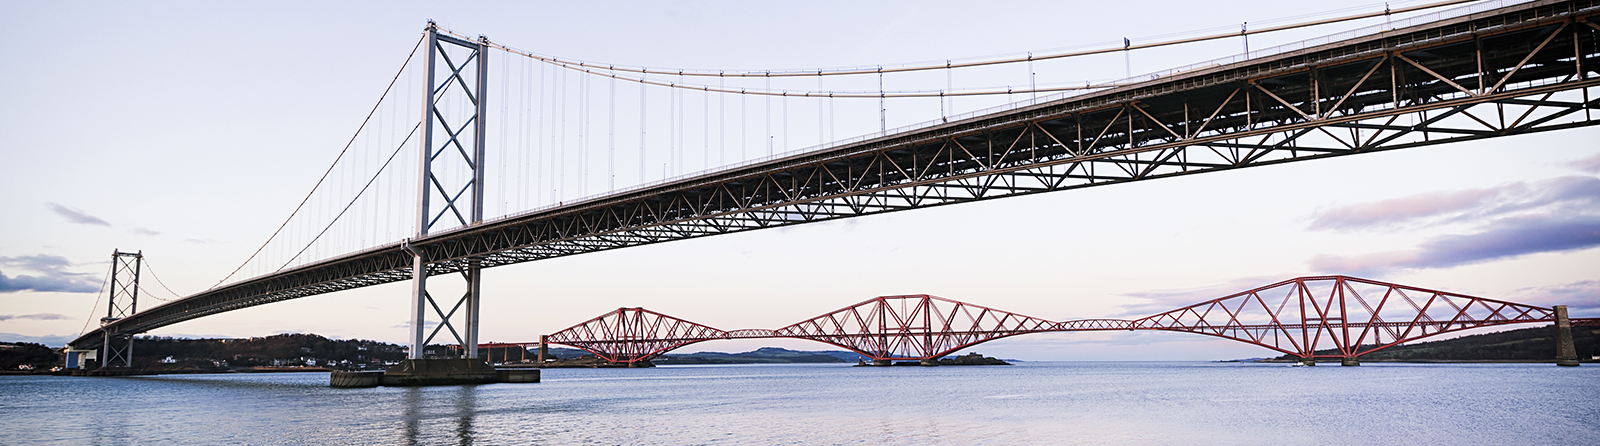 Both Forth Bridges